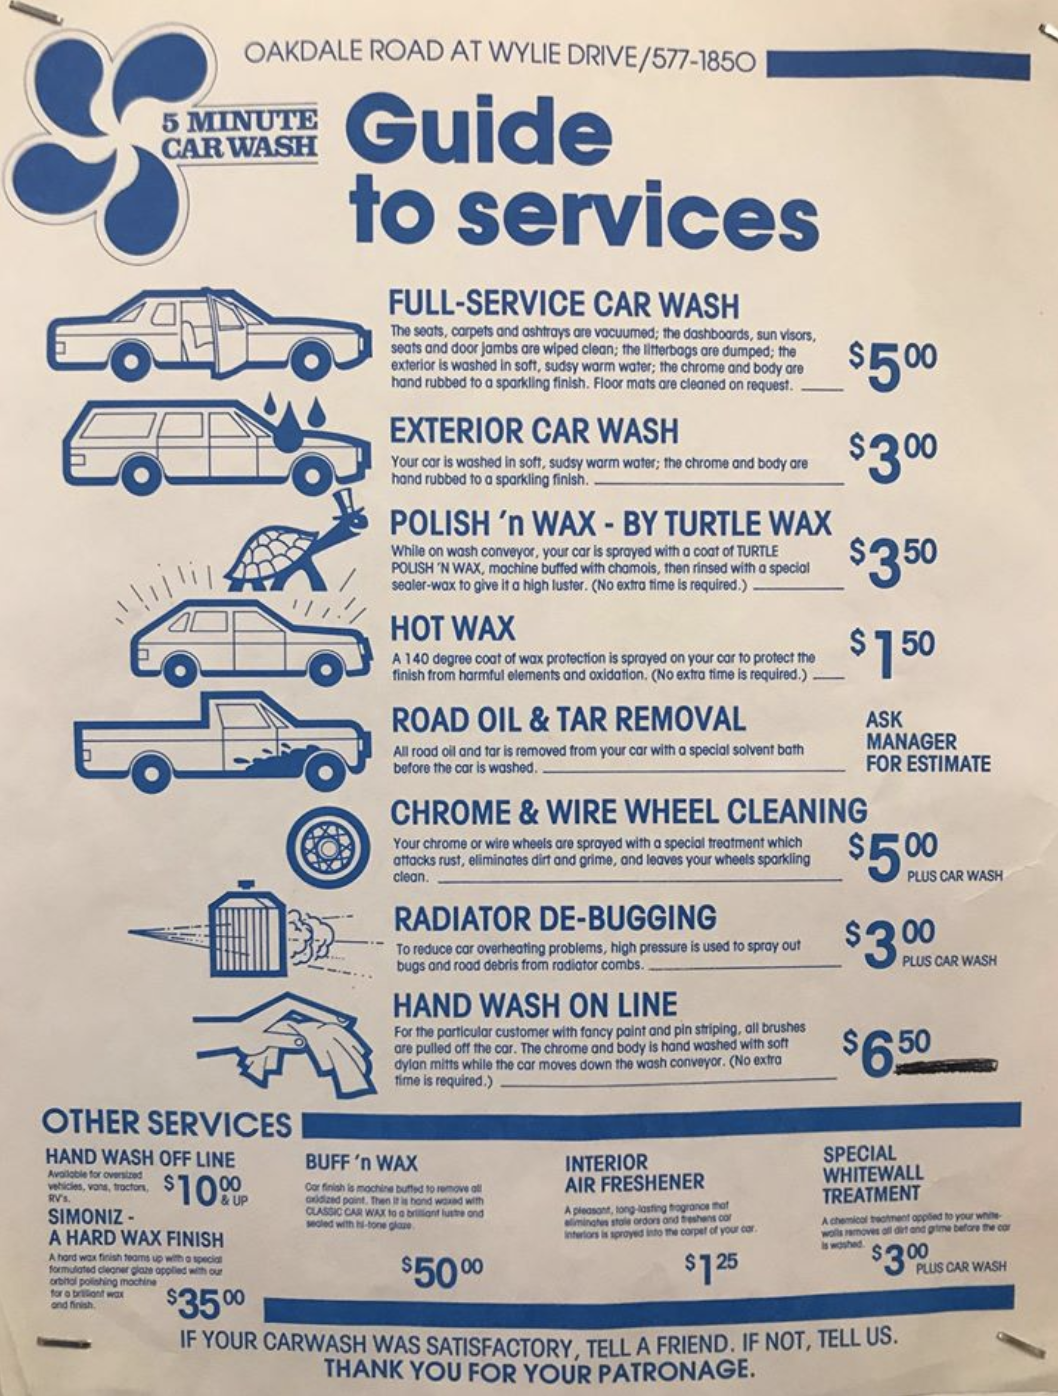 5 Minute CarWash Price Sheet, Early 1980's.